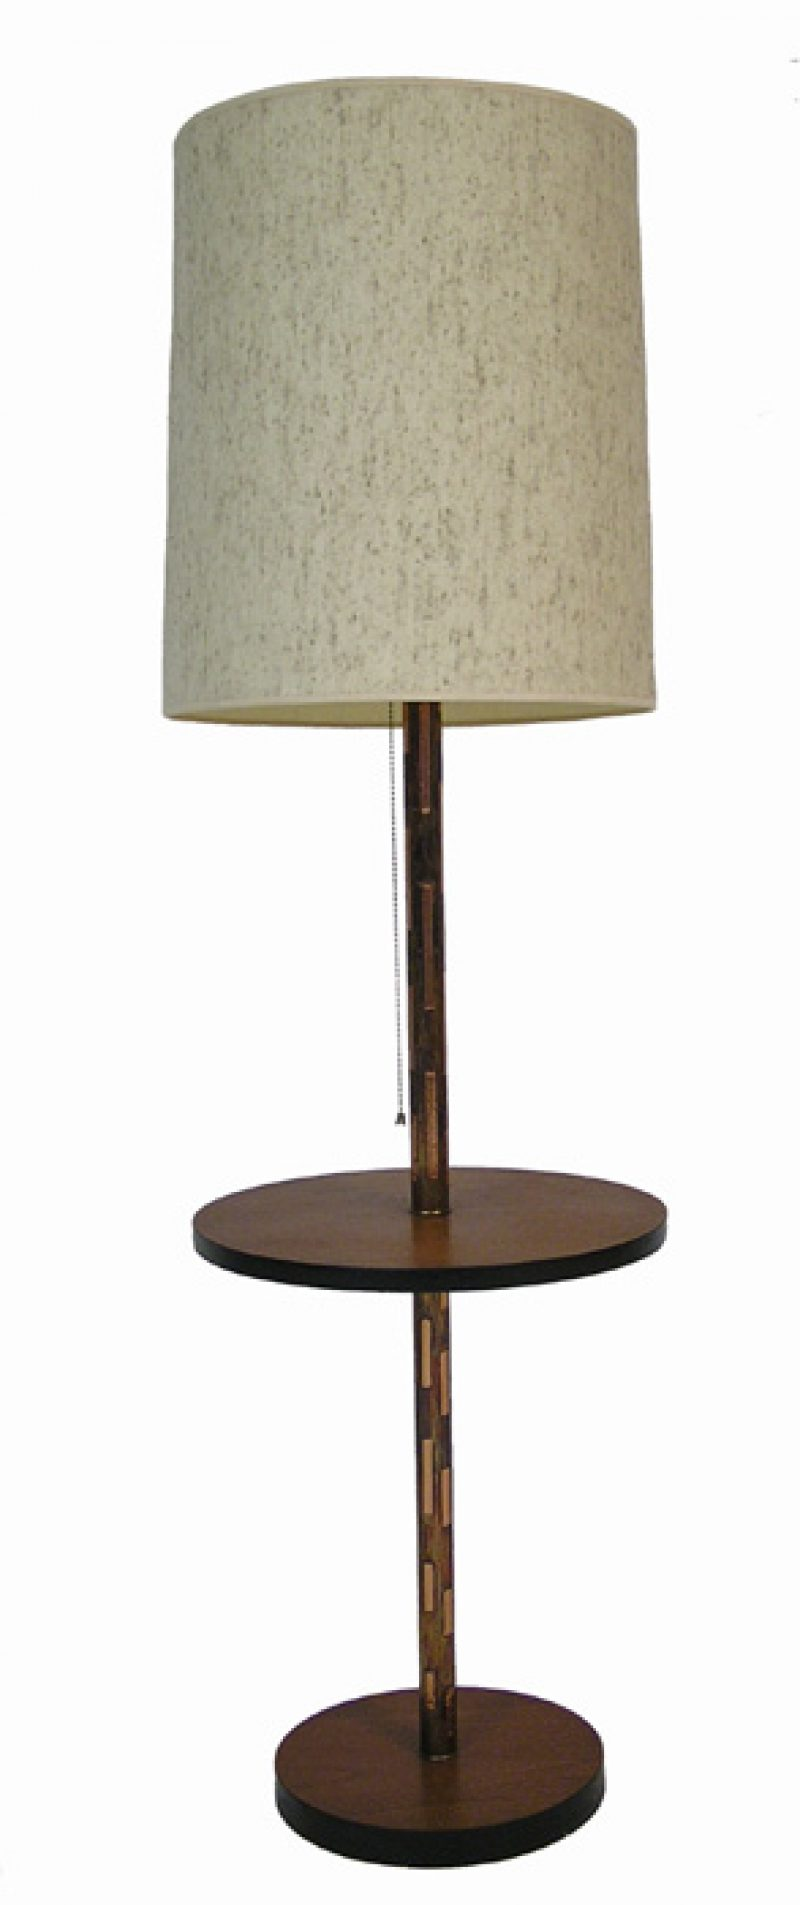 1960/70s Teak & Copper Floor Lamp w/Attached Table